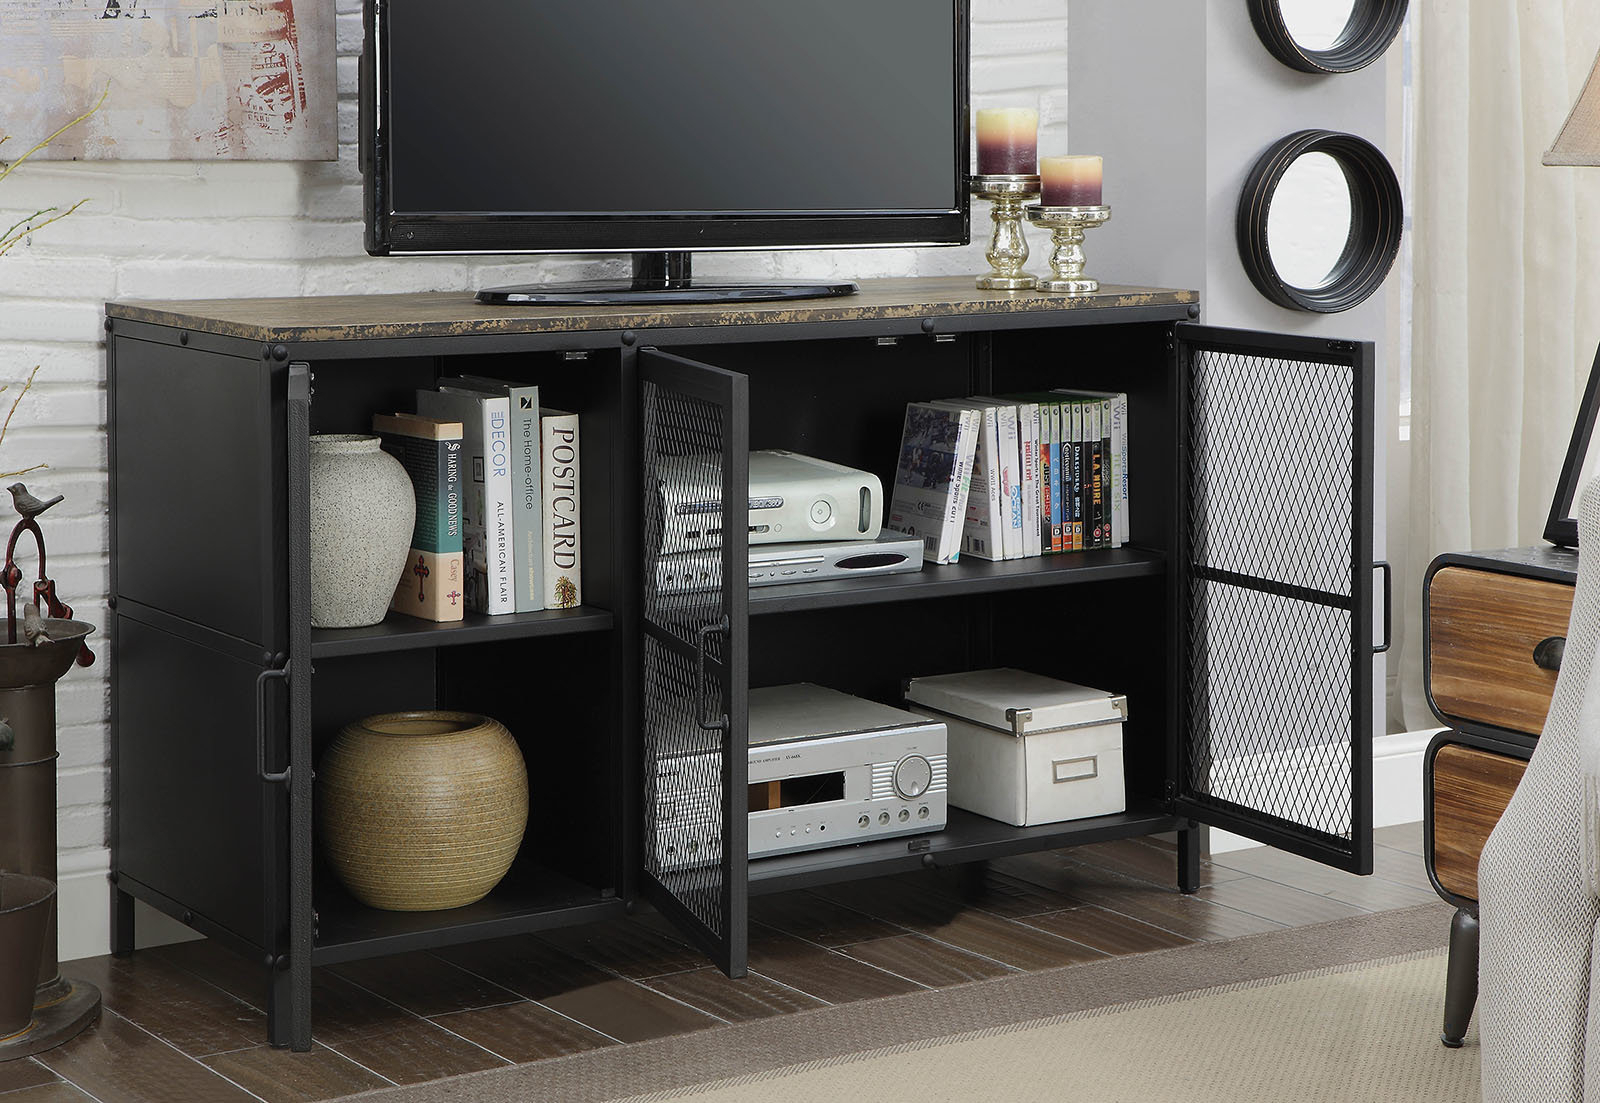 Williston Forge Smethwick Tv Stand For Tvs Up To 48"